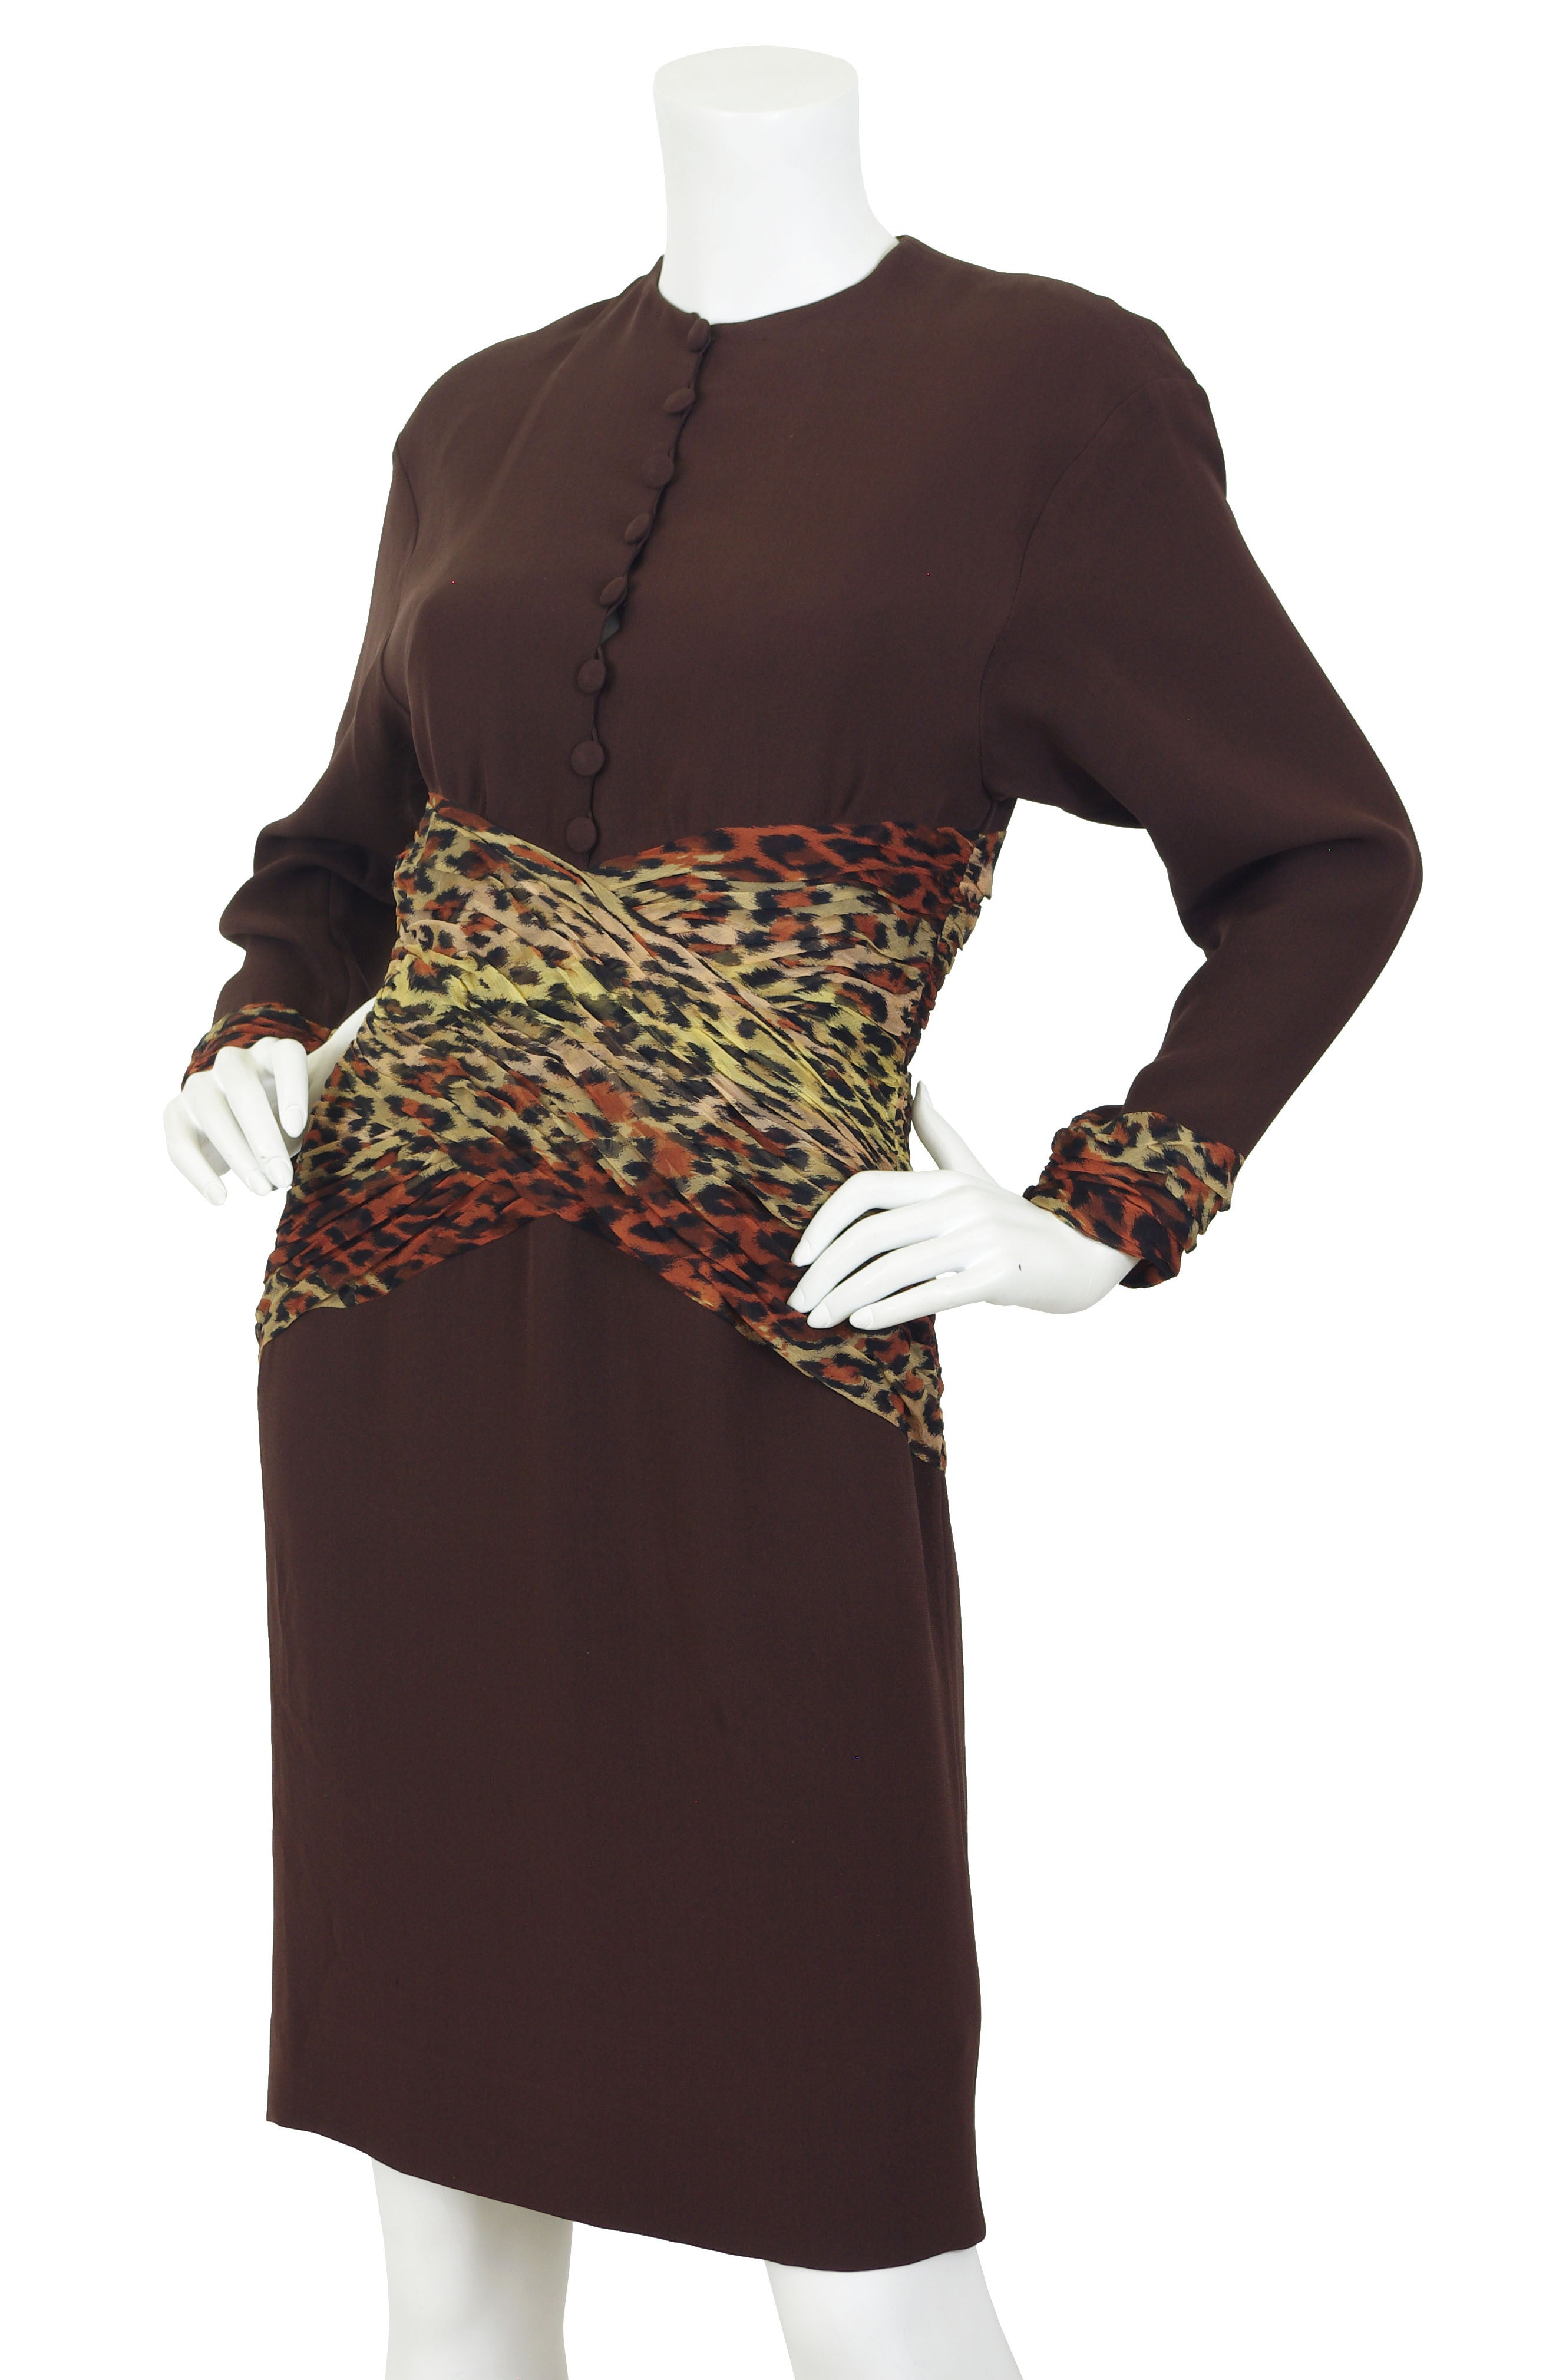 1980s Silk Chiffon Leopard Print & Brown Crepe Dress